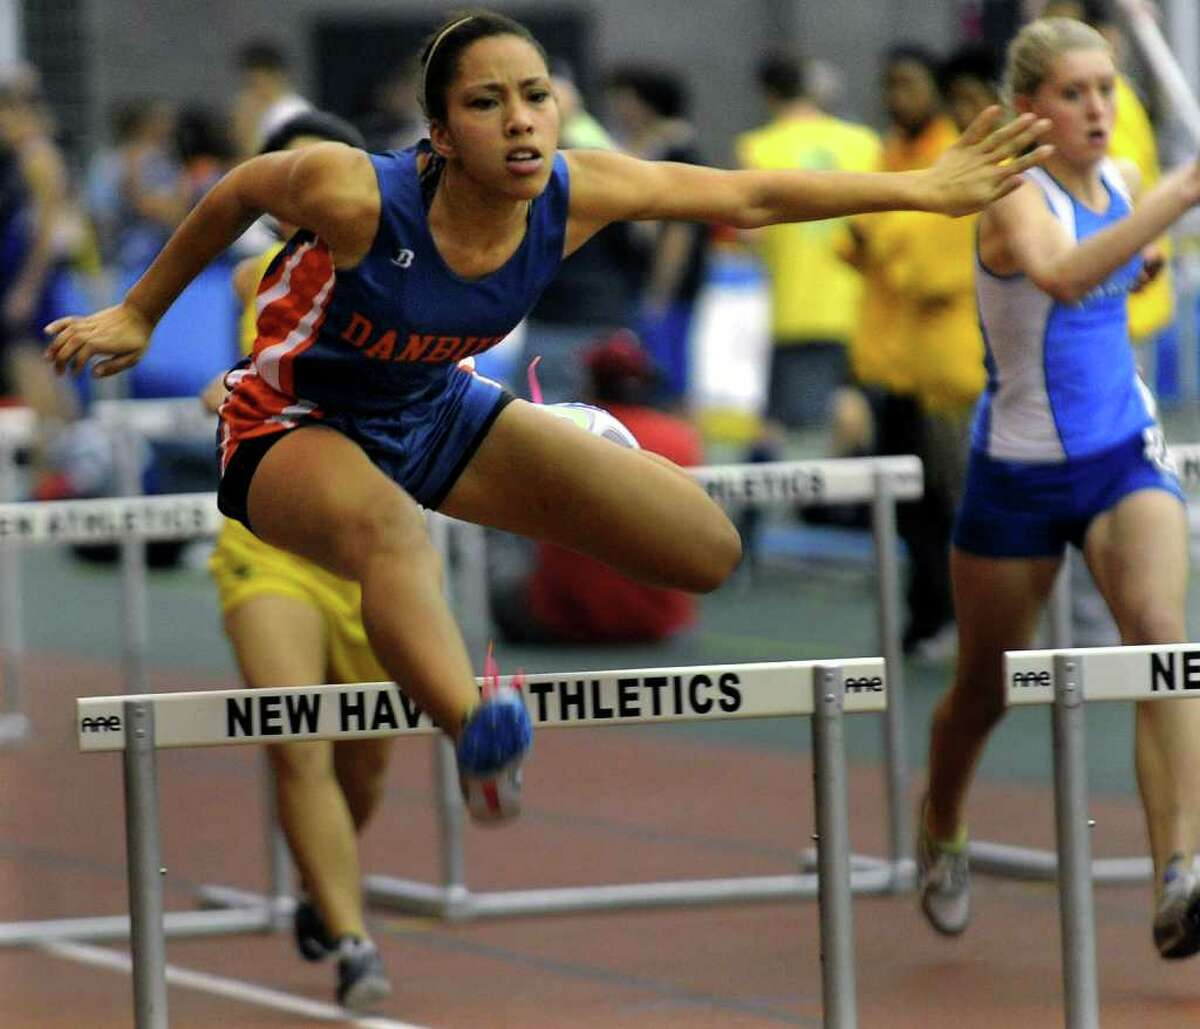 Danbury's Sarah Hicks competes in the hurdles, during FCIAC Track Championship action at the New Haven Athletic Center in New Haven, Conn. on Thursday February 2, 2012.